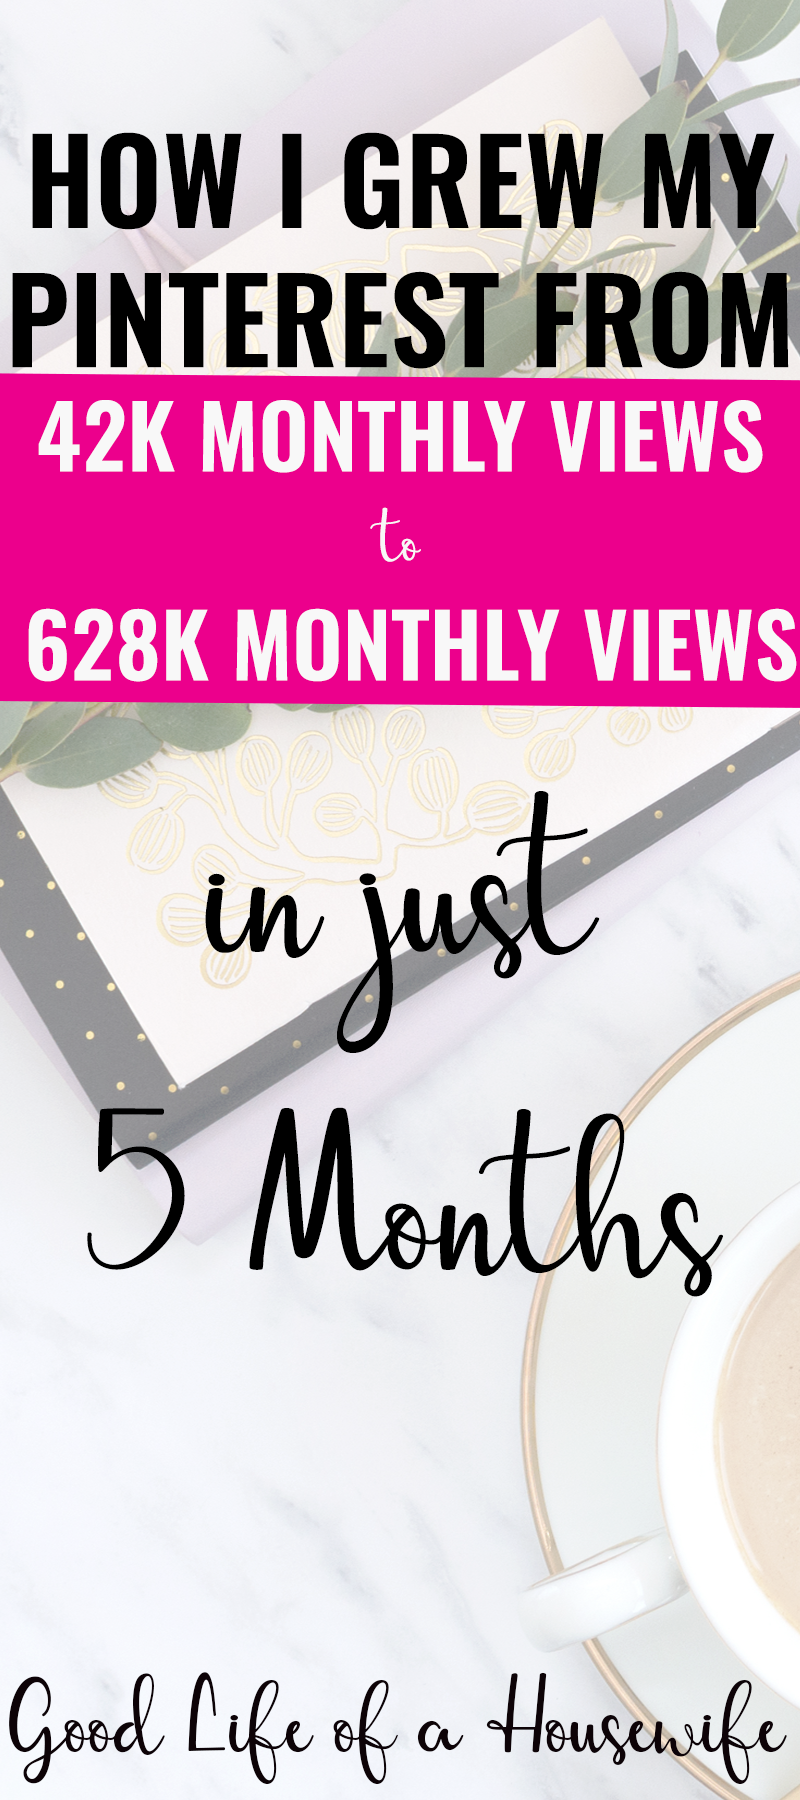 How I grew my Pinterest from 42K to 628K in just five months using manual pinning and tailwind to create a pinning plan.